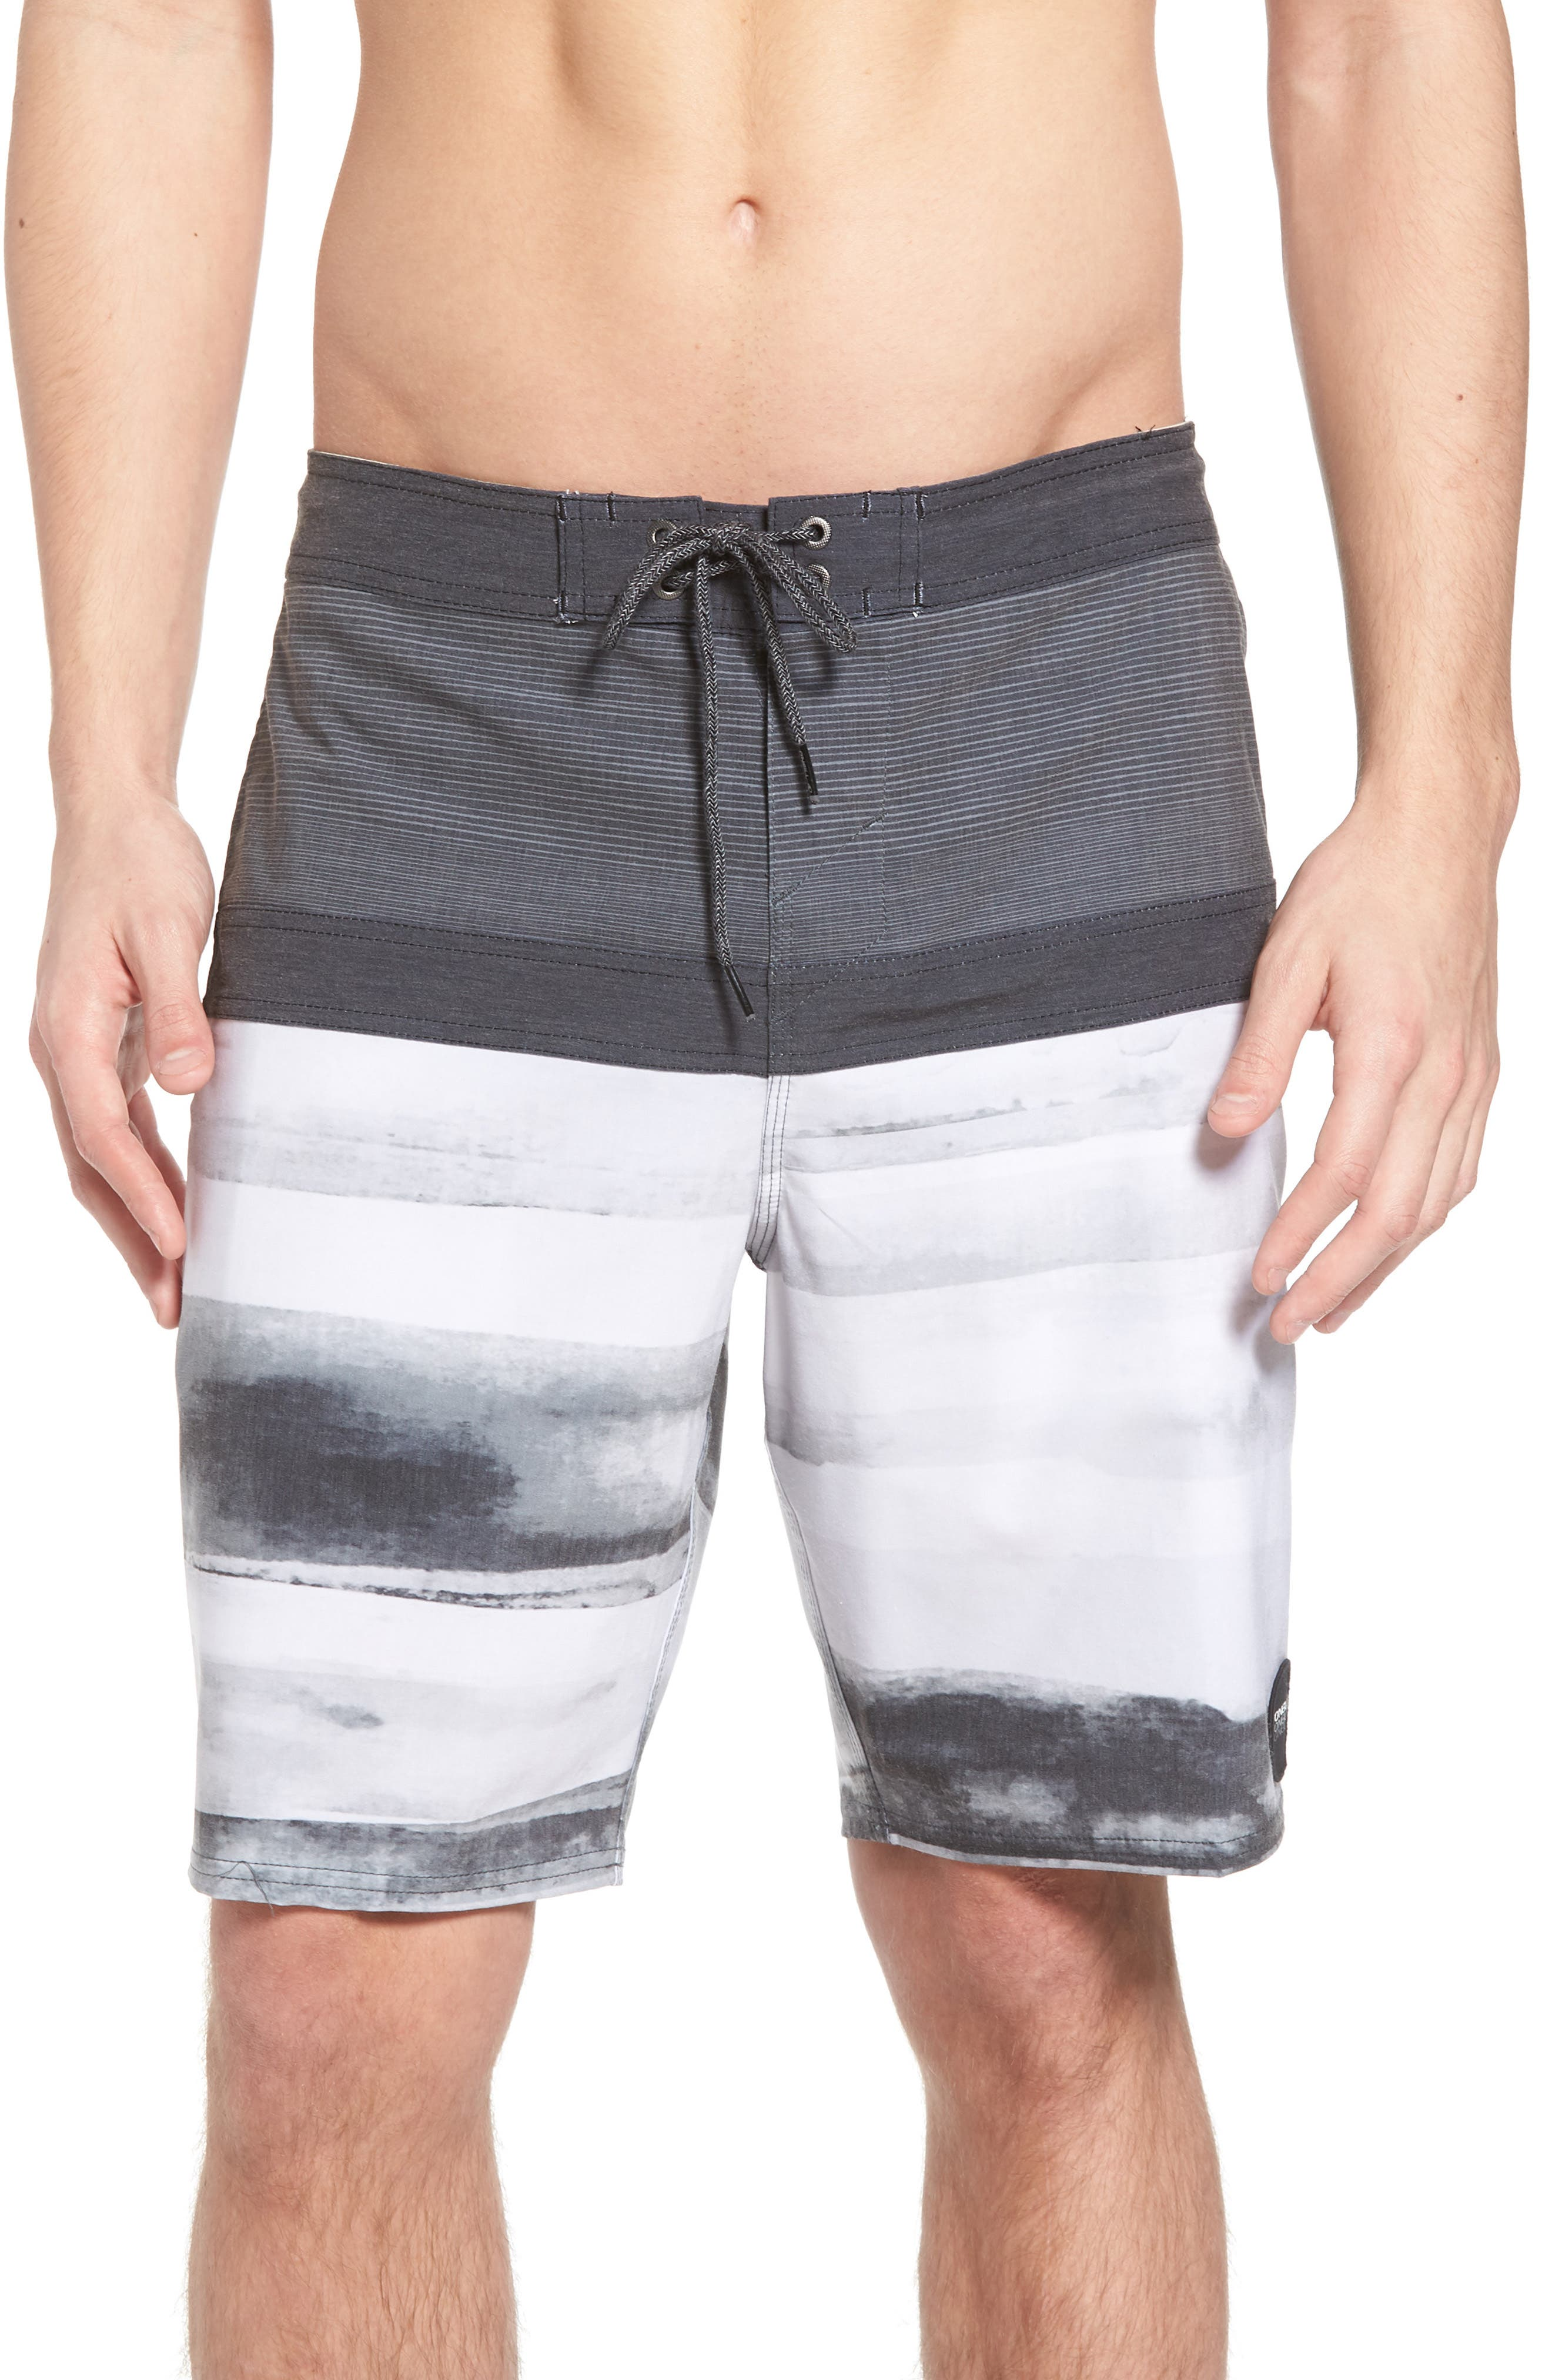 Breaker Cruzer Board Shorts,                             Main thumbnail 1, color,                             001